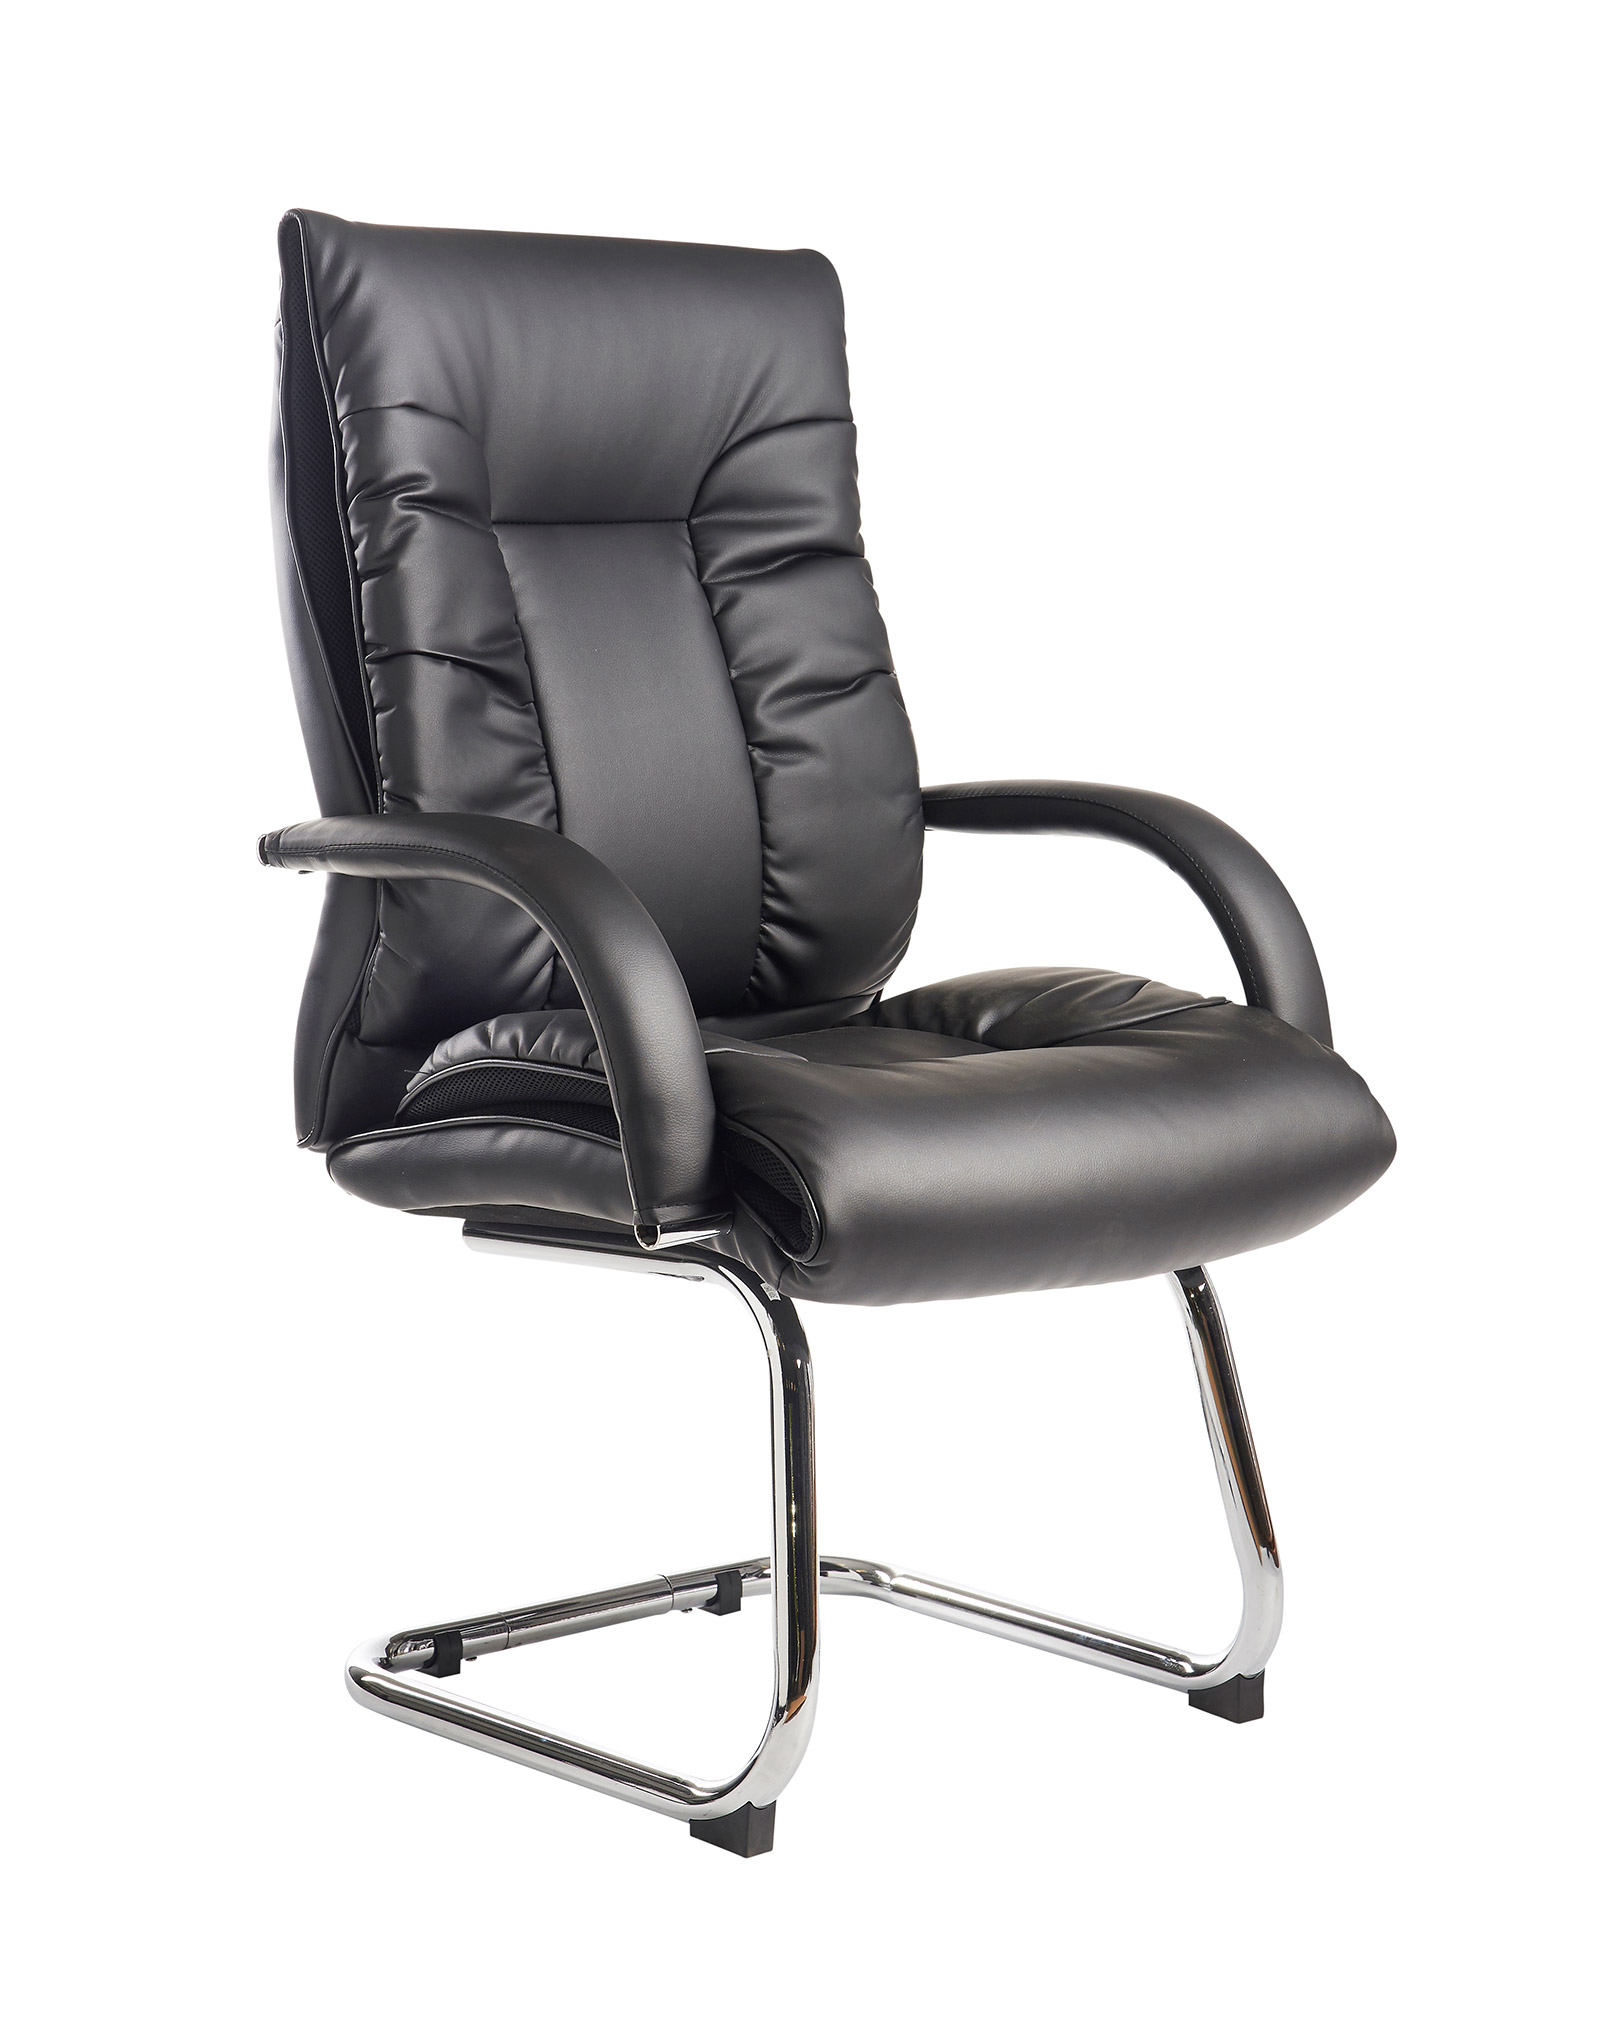 Derby executive cantilever chair black faux leather